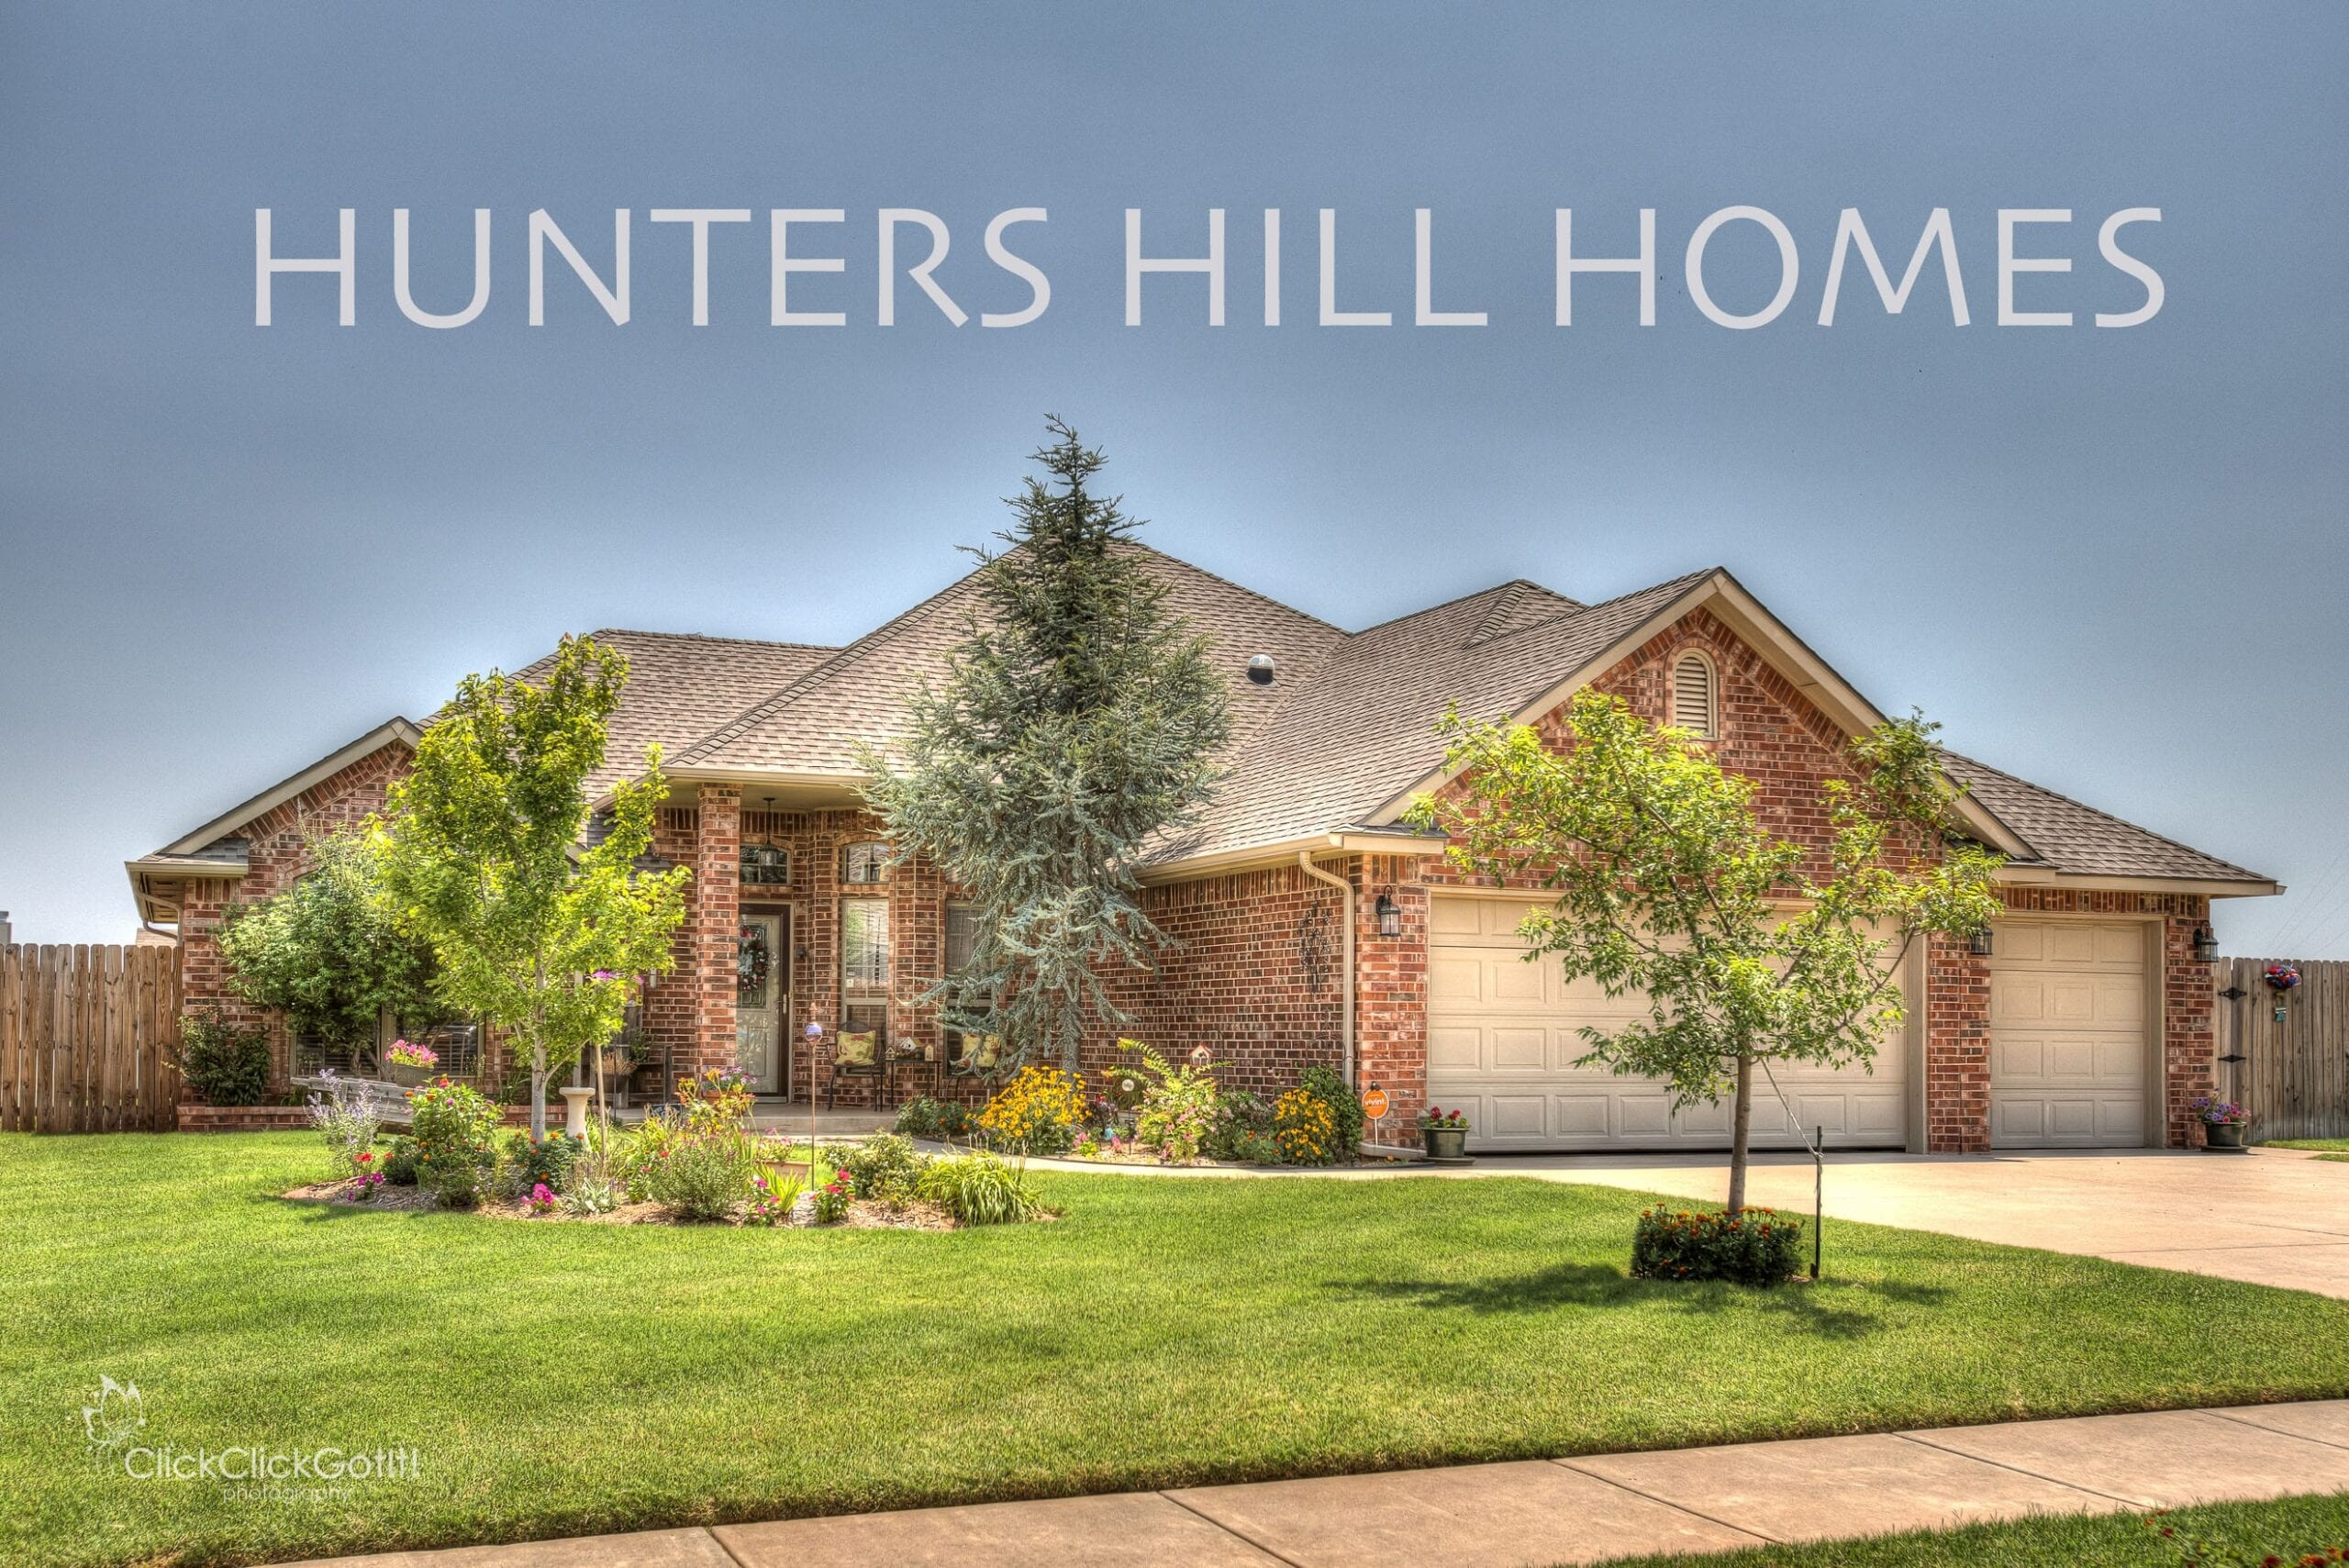 HUNTERS HILL MUSTANG OK - EXPERIENCE QUIET URBAN LIVING